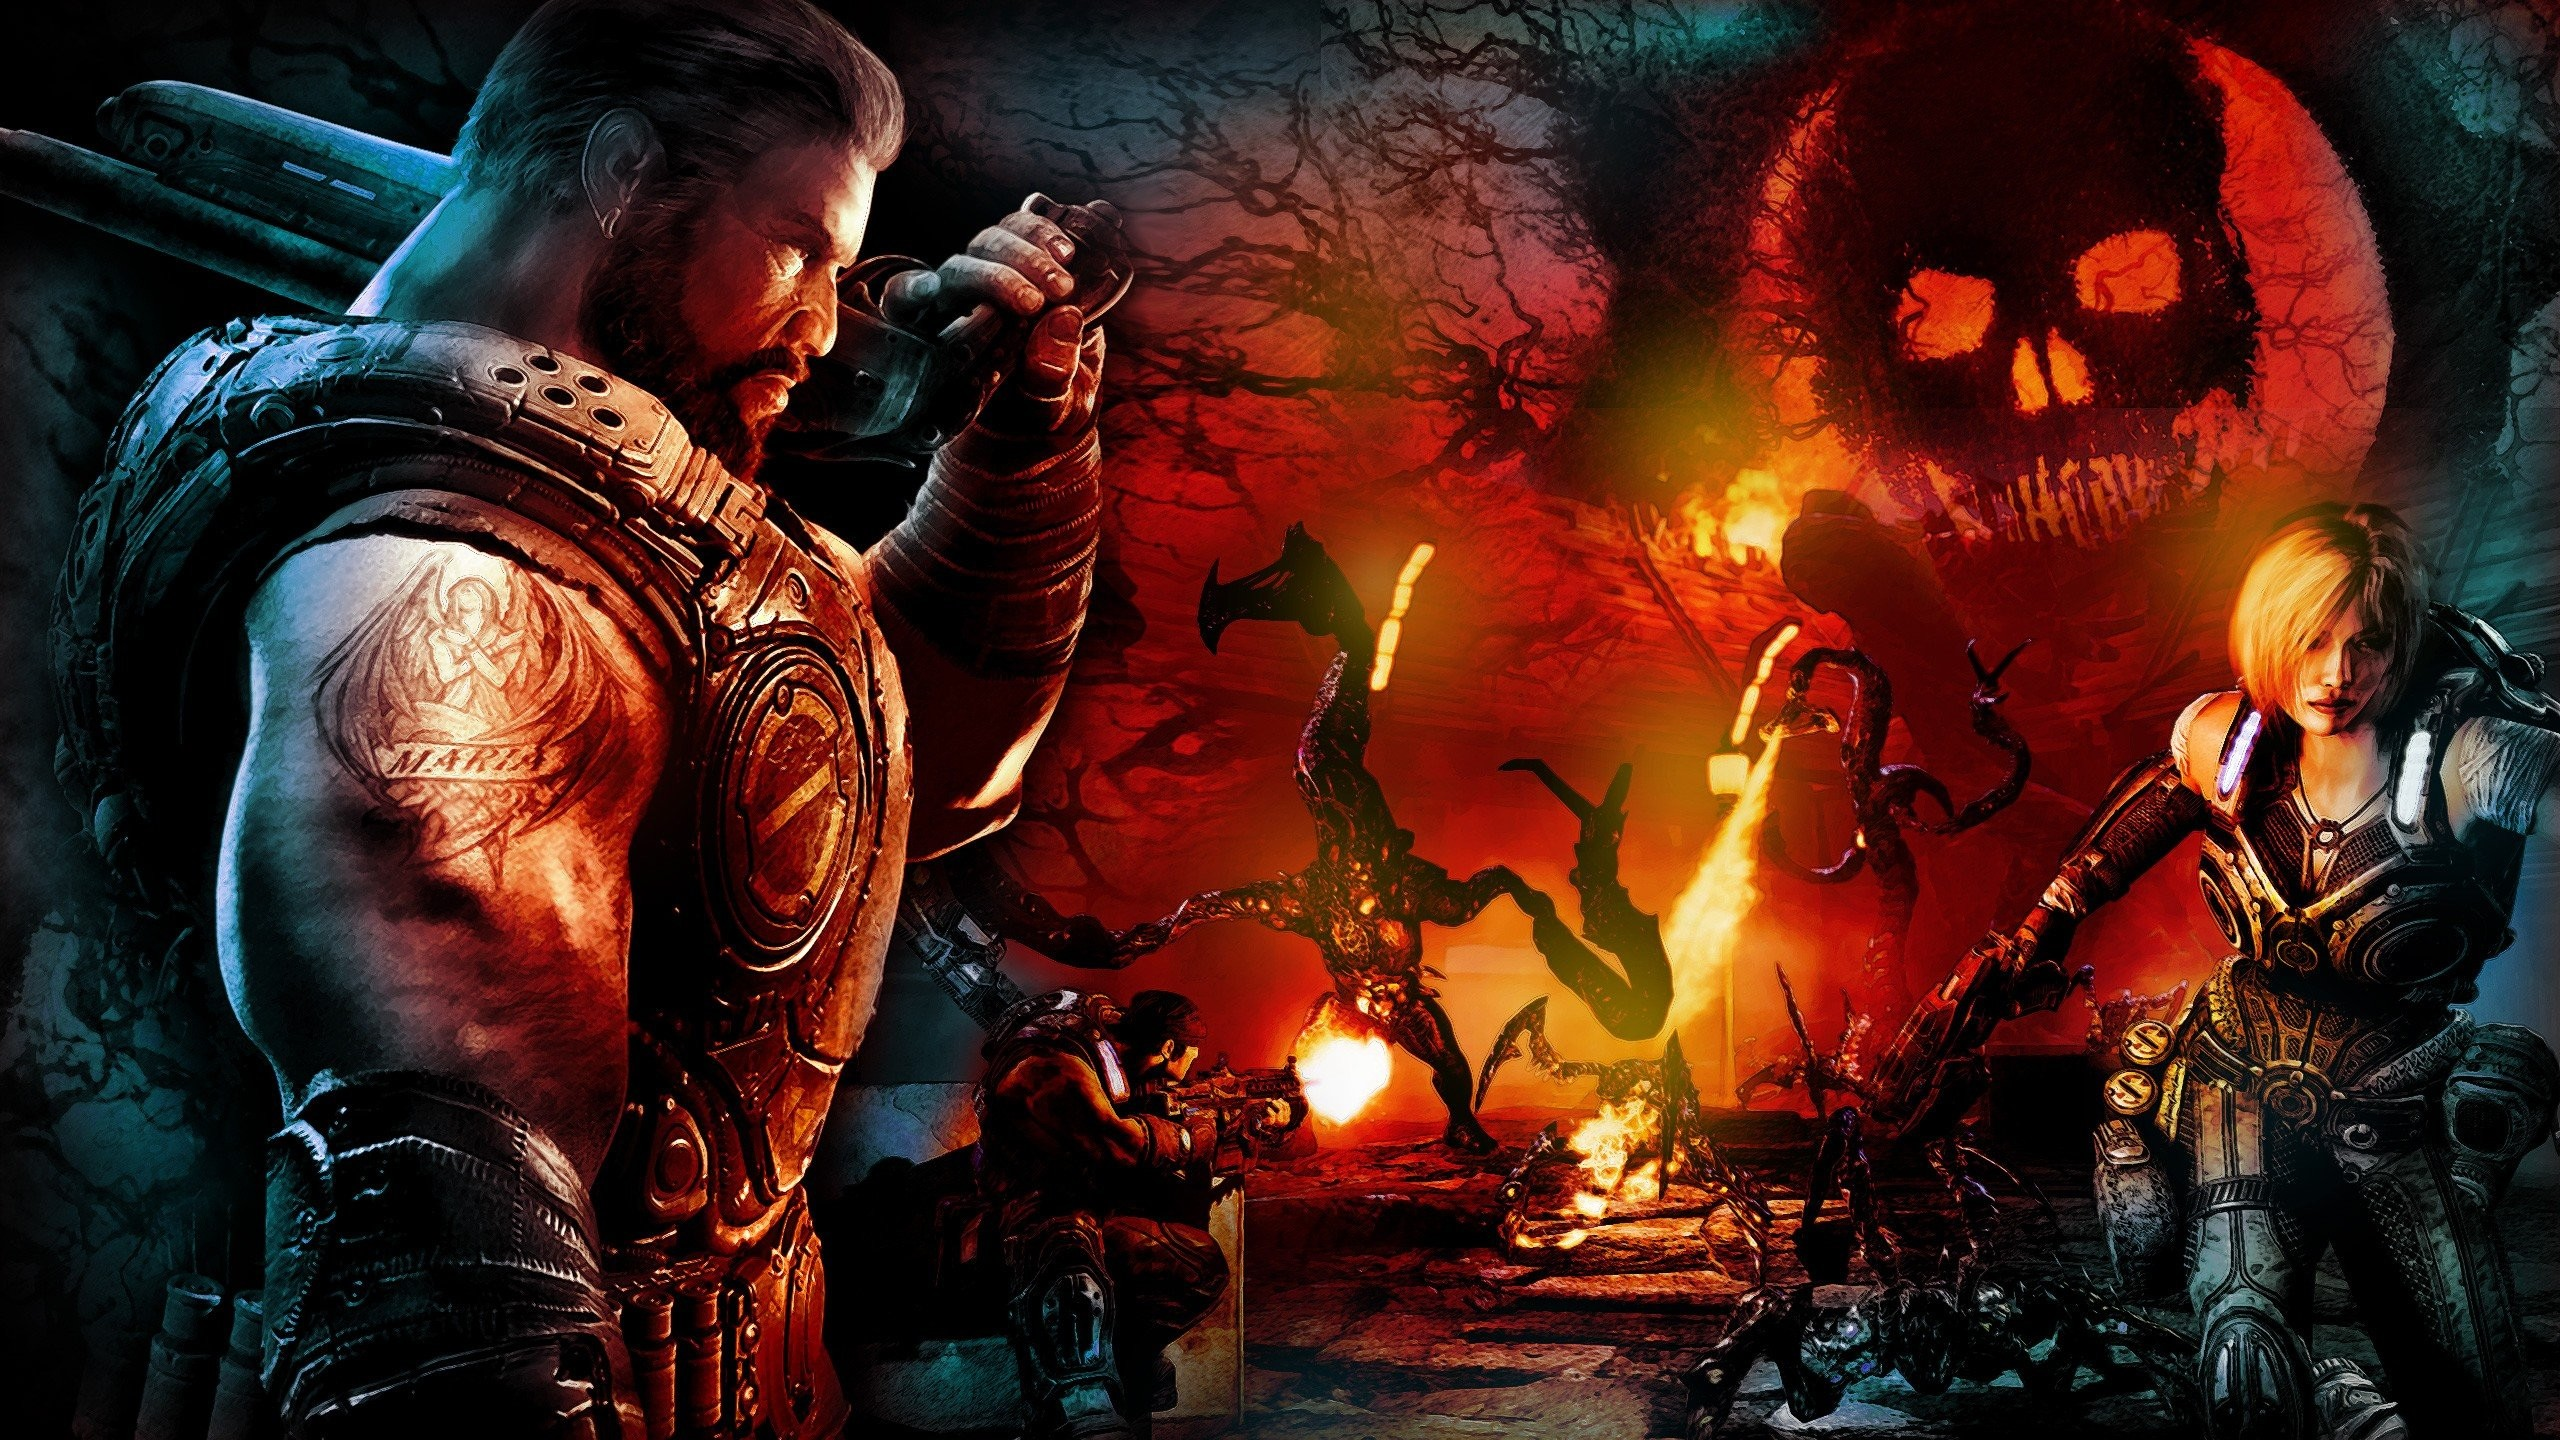 2560x1440 Gears Of War 3 HD Wallpaper HD 10 - 2560 X 1440